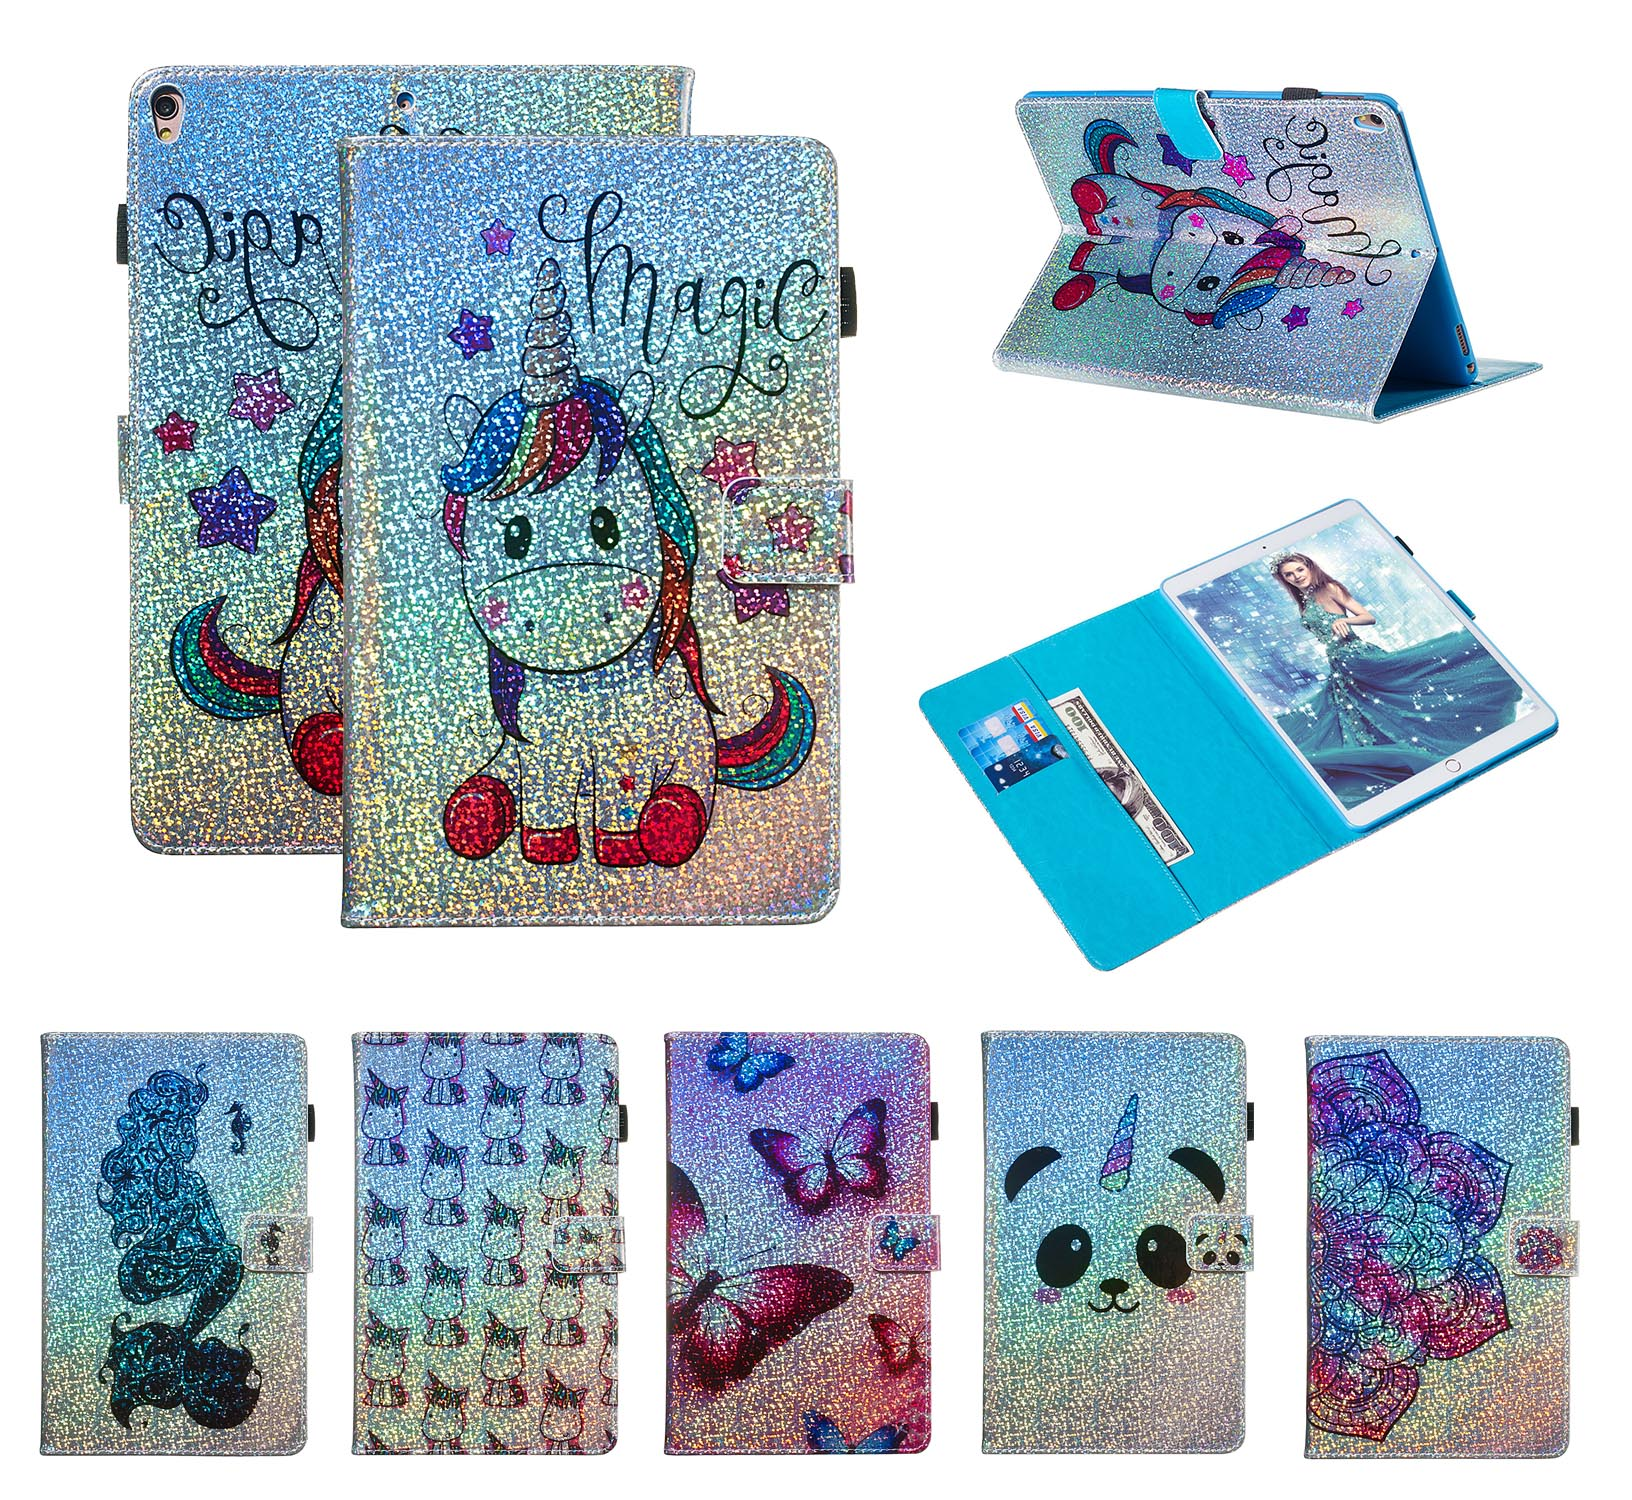 Fundas Case For apple iPad Pro 10.5 2017 PU Leather Flip Bling Unicorn Butterfly Flower for Air 3th Generation 2019